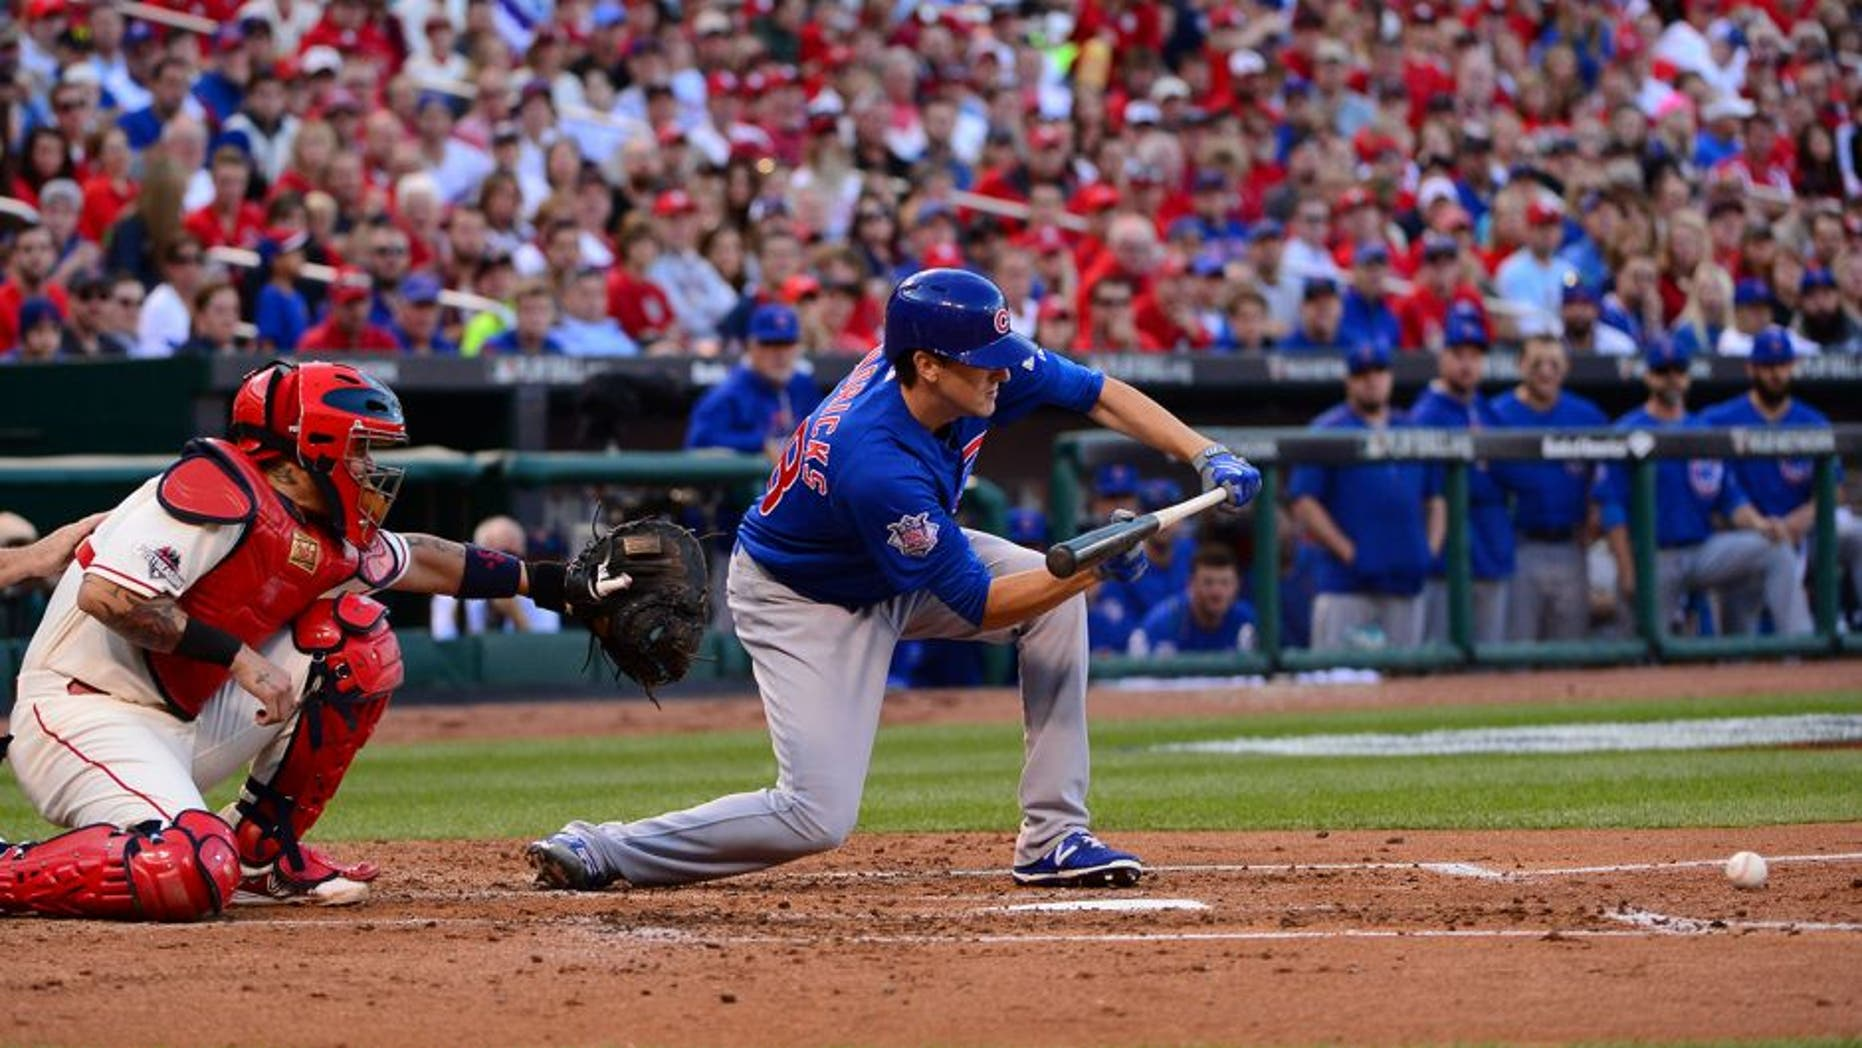 Oct 10, 2015; St. Louis, MO, USA; Chicago Cubs starting pitcher Kyle Hendricks (right) hits a sacrifice bunt against St. Louis Cardinals catcher Yadier Molina (left) scoring Cubs left fielder Austin Jackson (not pictured) during the second inning in game two of the NLDS at Busch Stadium. Mandatory Credit: Jeff Curry-USA TODAY Sports